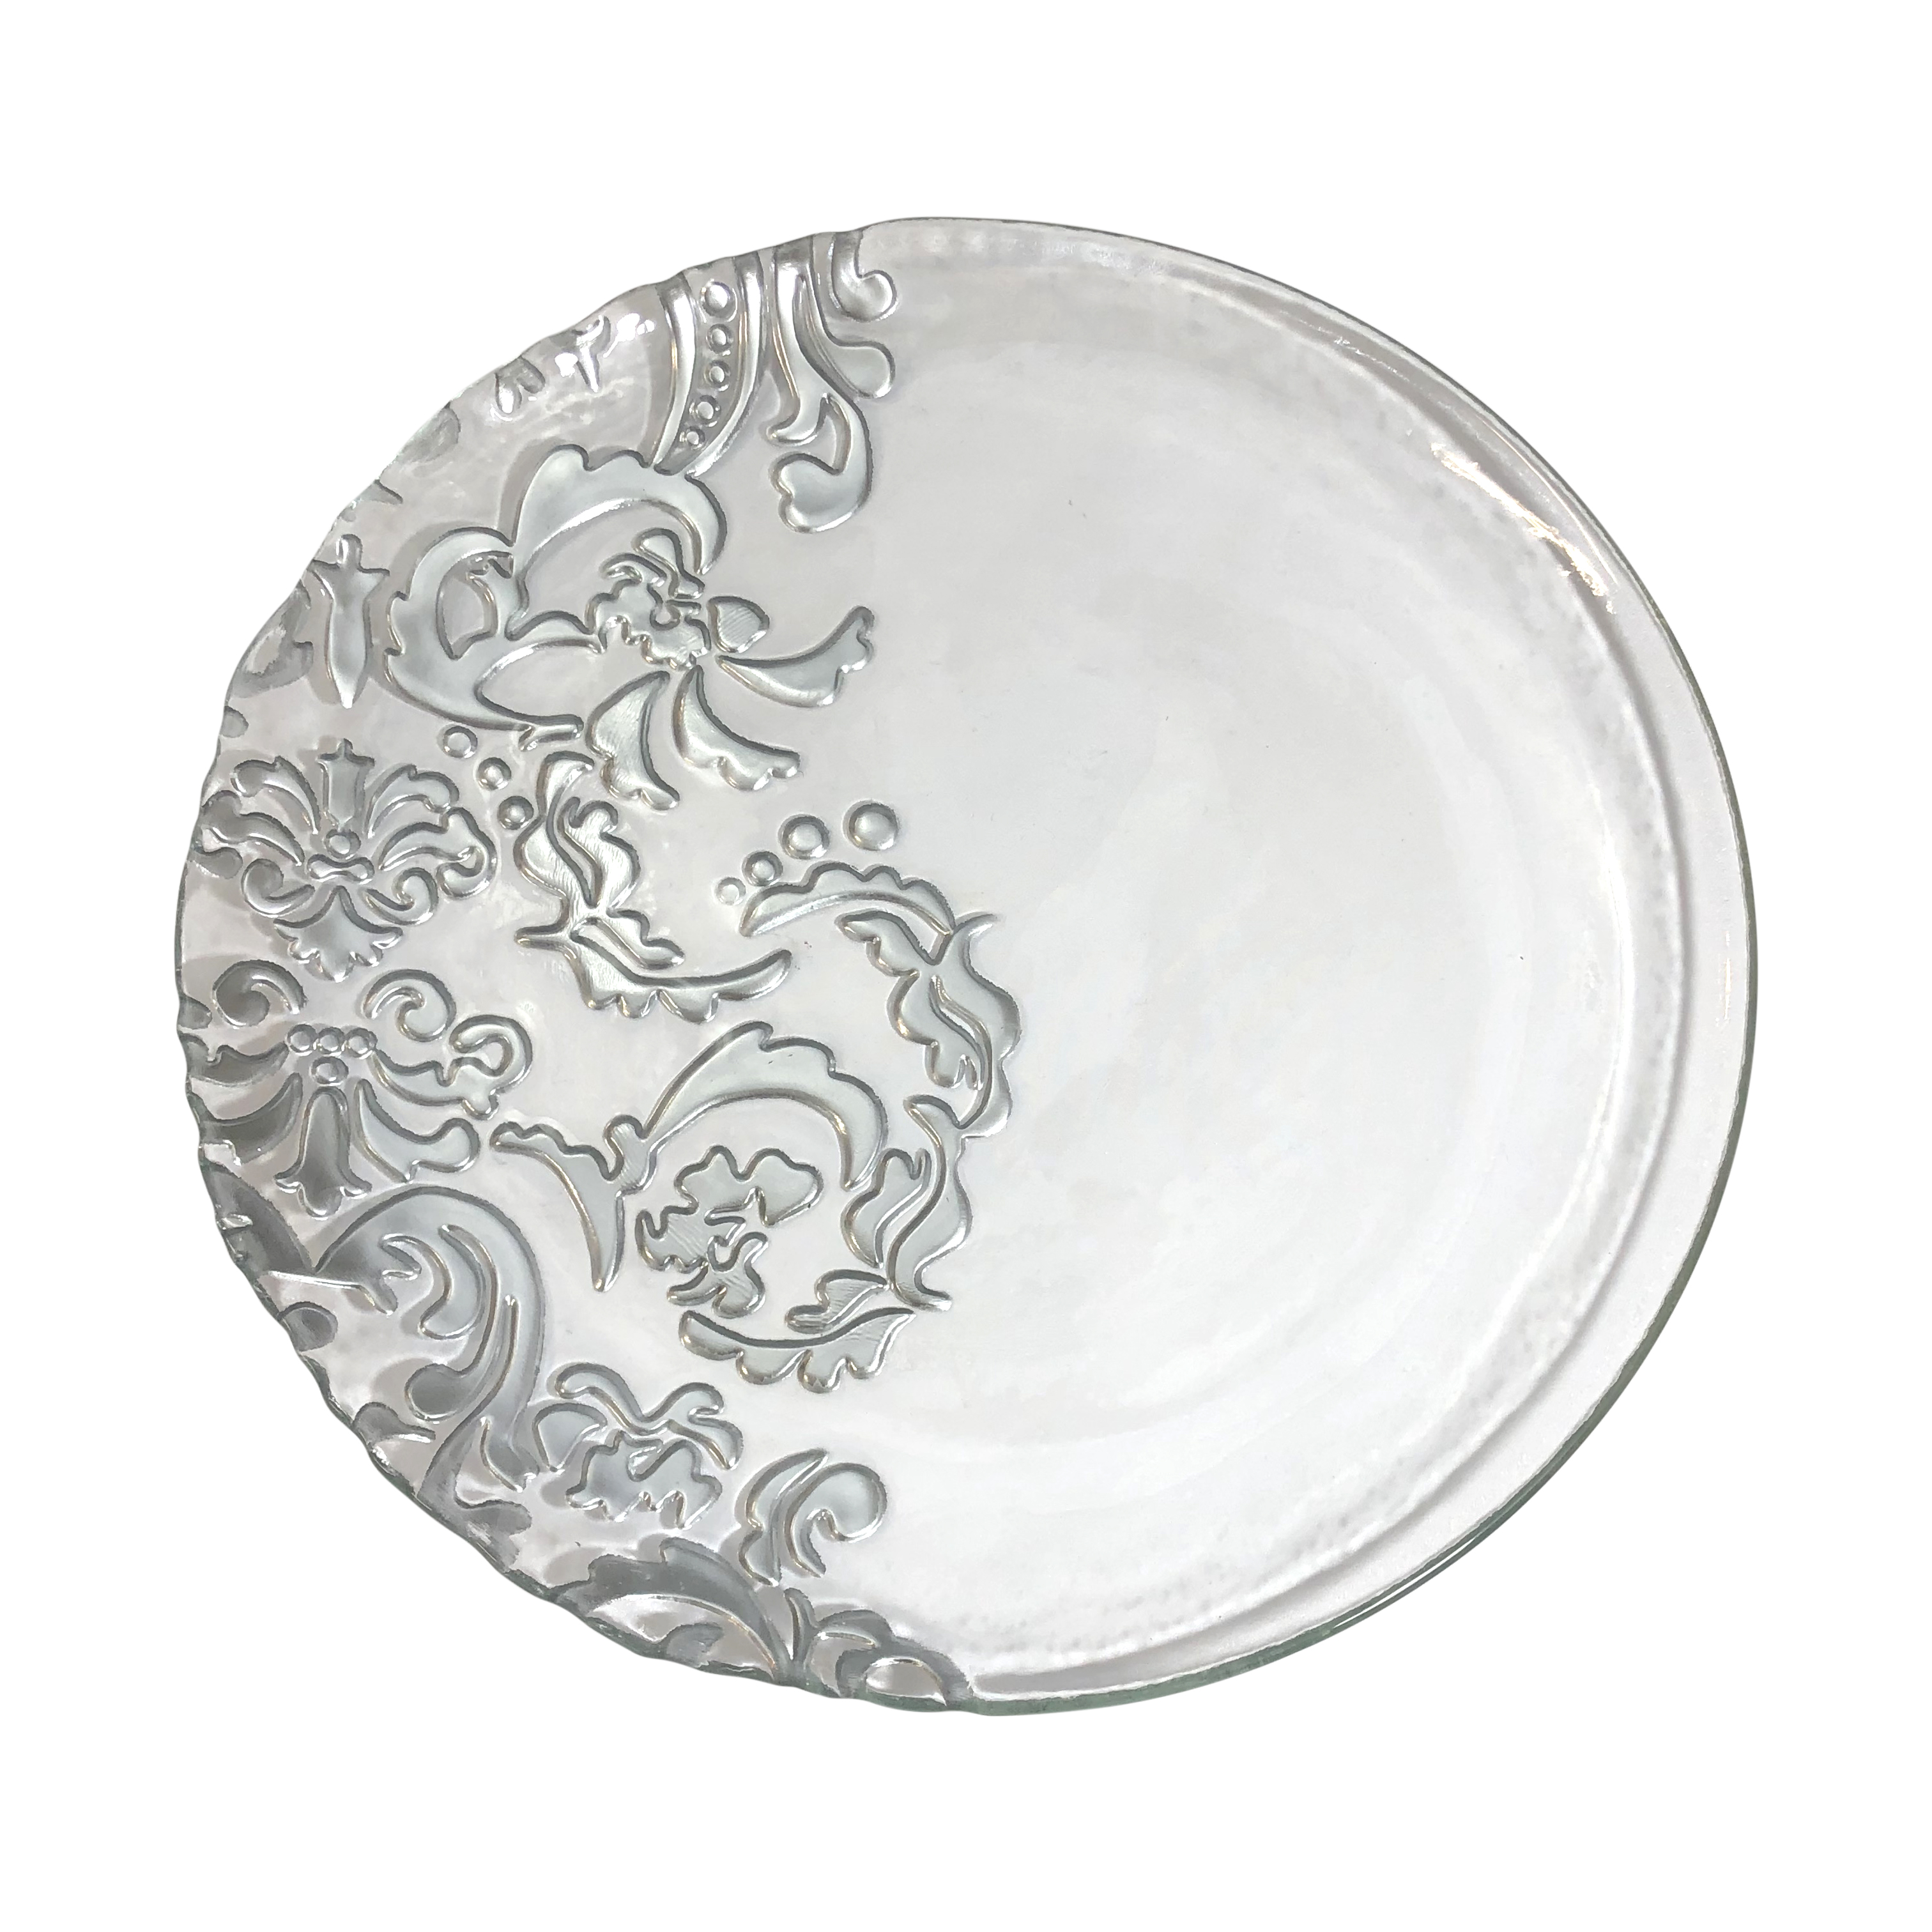 Silver/Glass 11 inch Face Plate